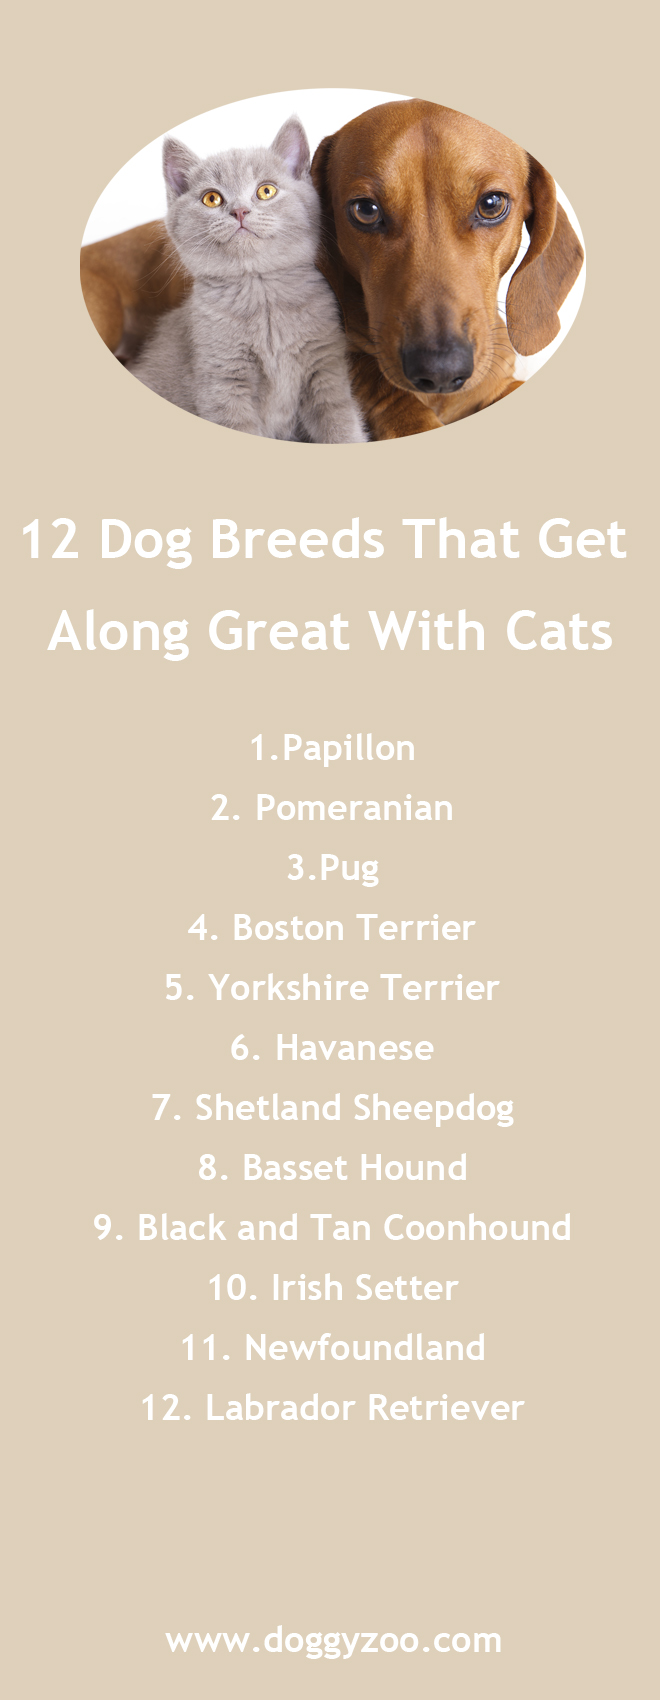 how to train cat and dogs to get along